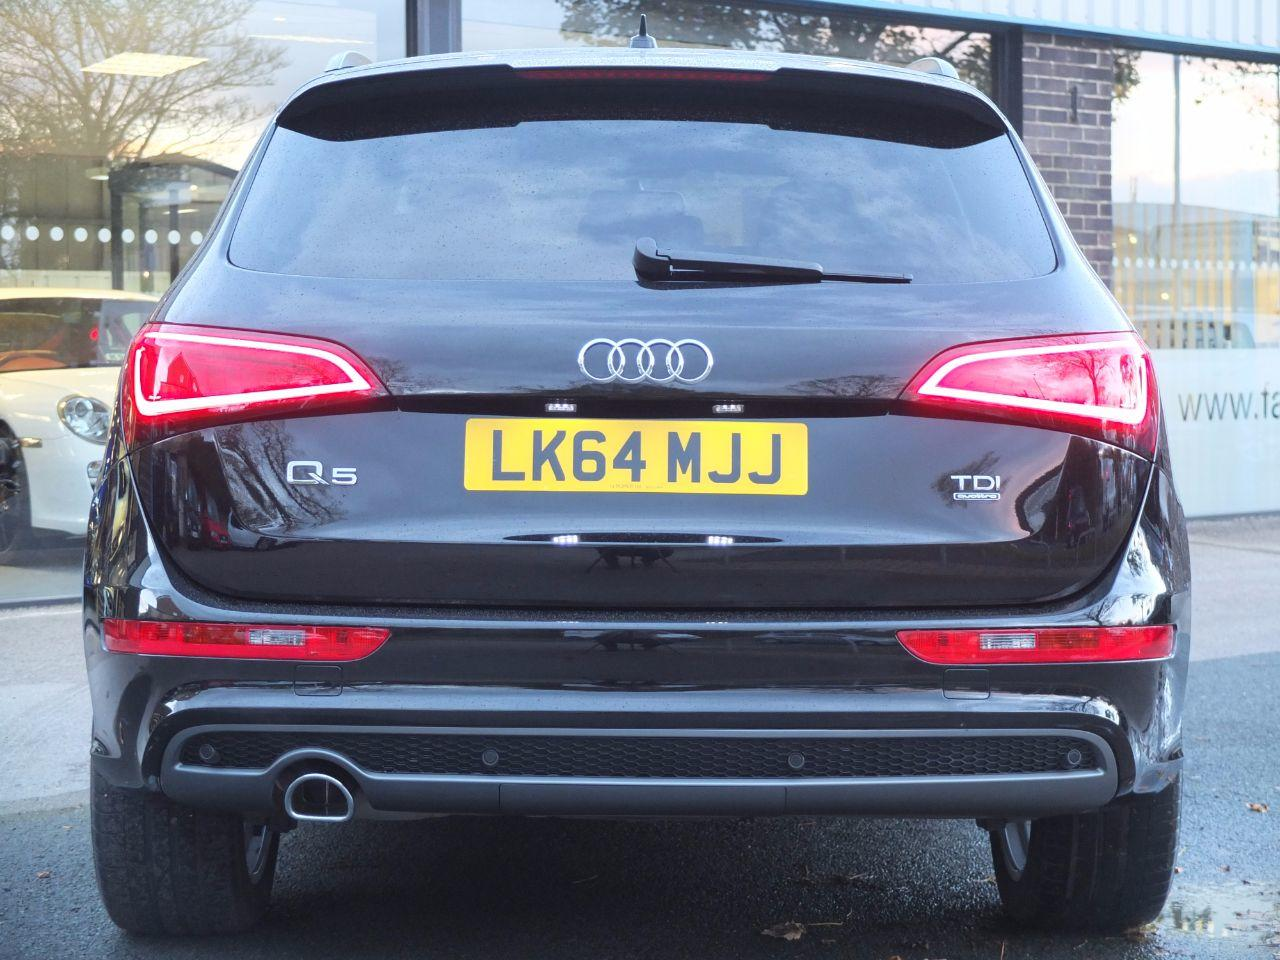 Audi Q5 2.0 TDI quattro S Line Plus 177ps S tronic Estate Diesel Mythos Black Metallic